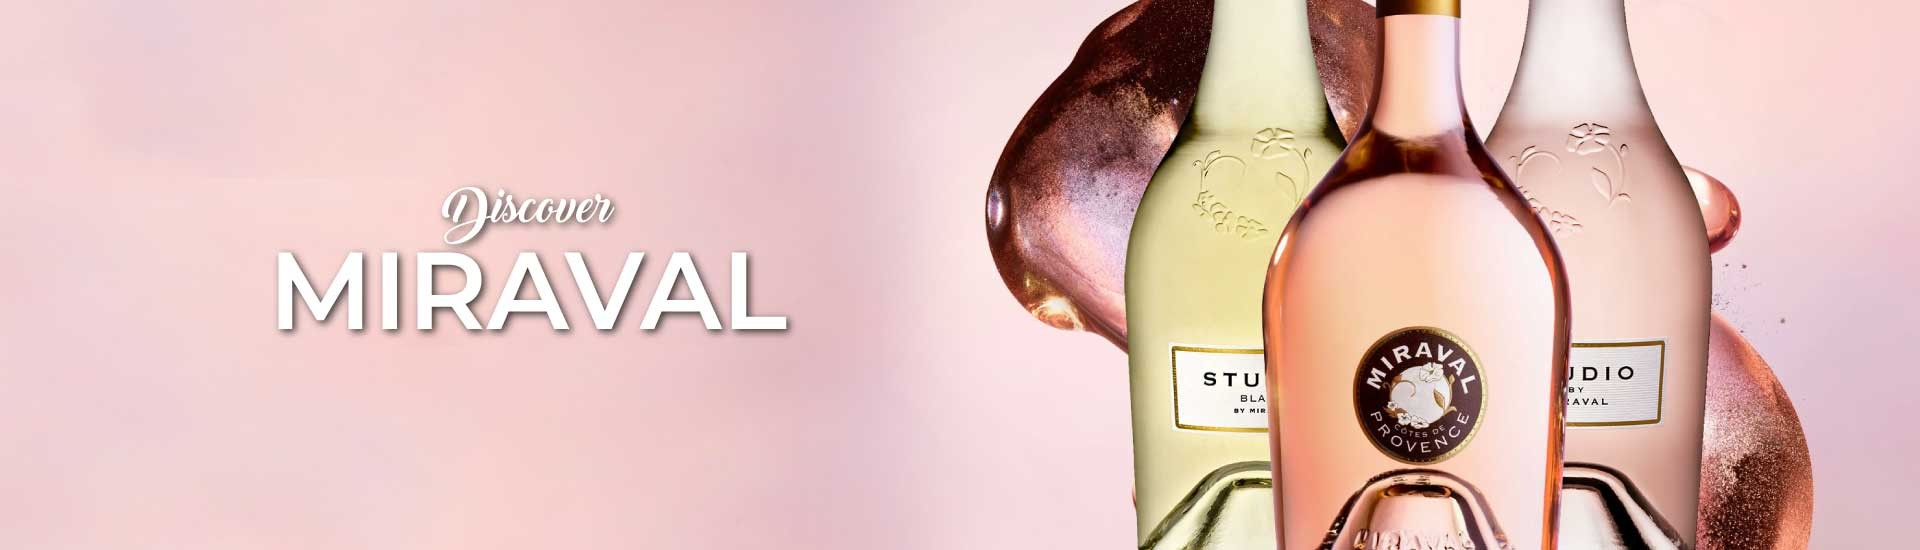 DISCOVER MIRAVAL